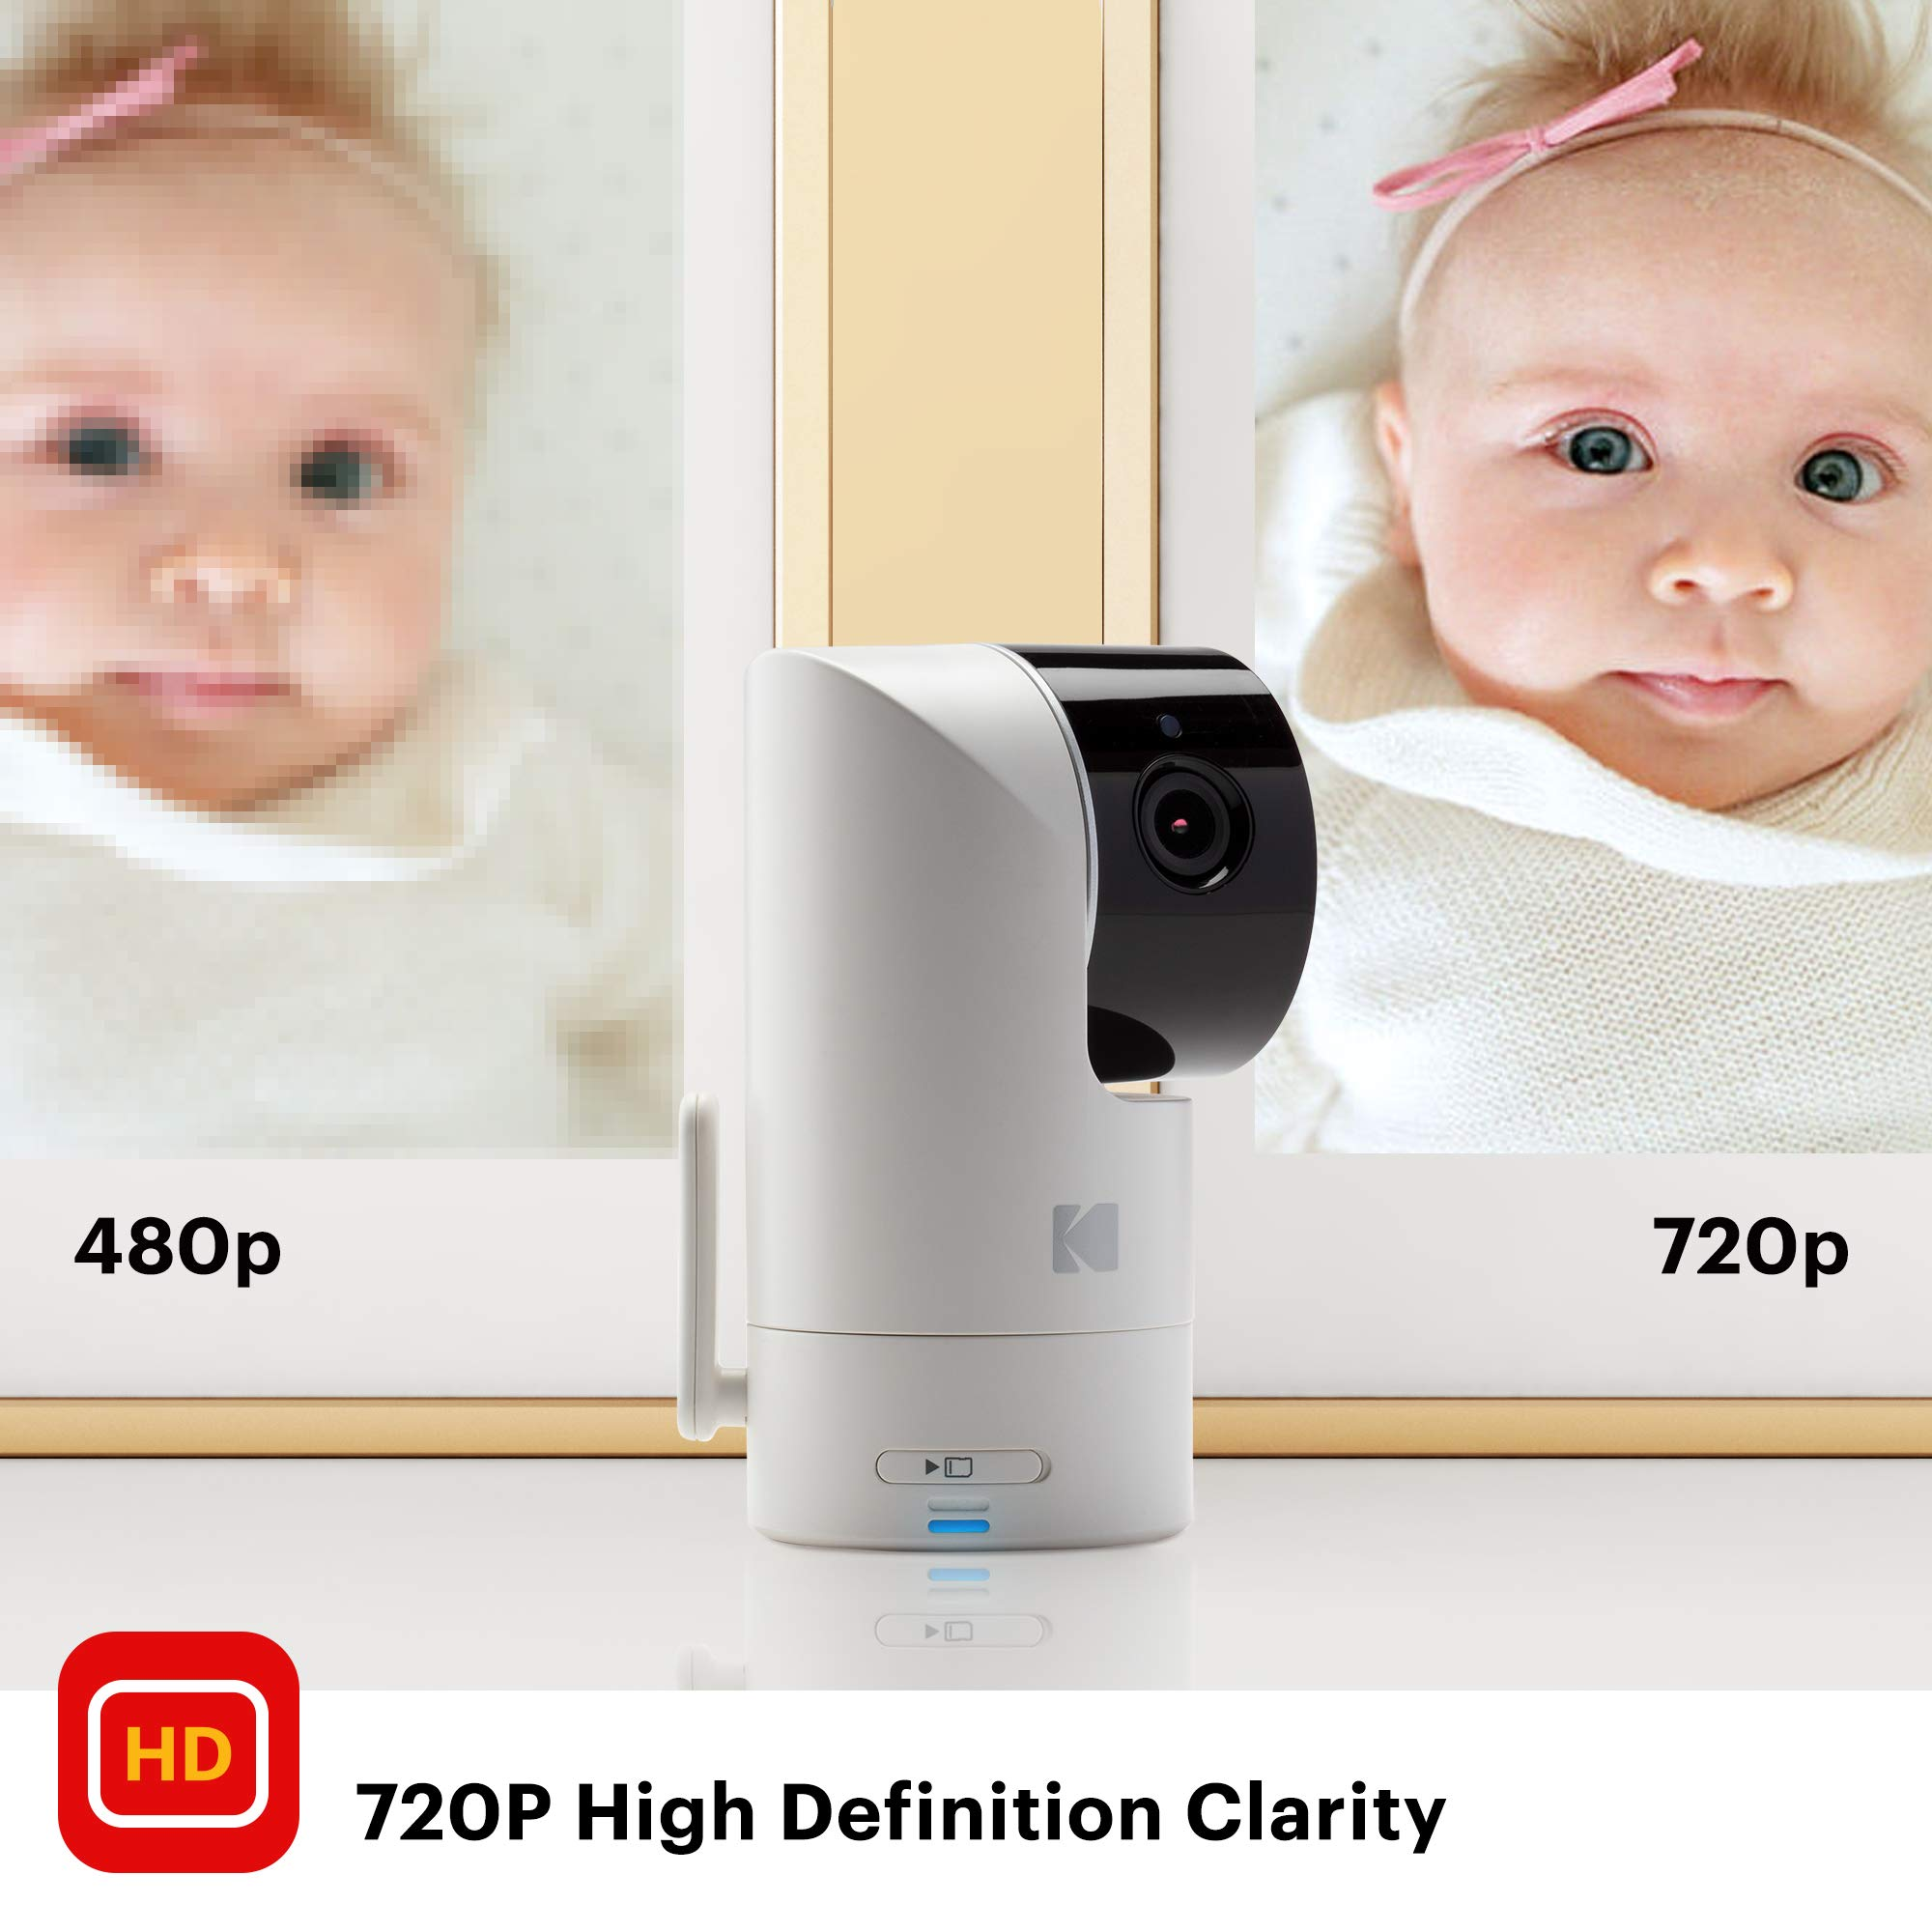 KODAK Cherish C525 Video Baby Monitor + C125 Additional Camera - with Mobile App - 5'' HD Screen - Hi-res Baby Camera with Remote Tilt, Pan and Zoom Two-Way Audio, Night-Vision, Long Range by Kodak (Image #7)